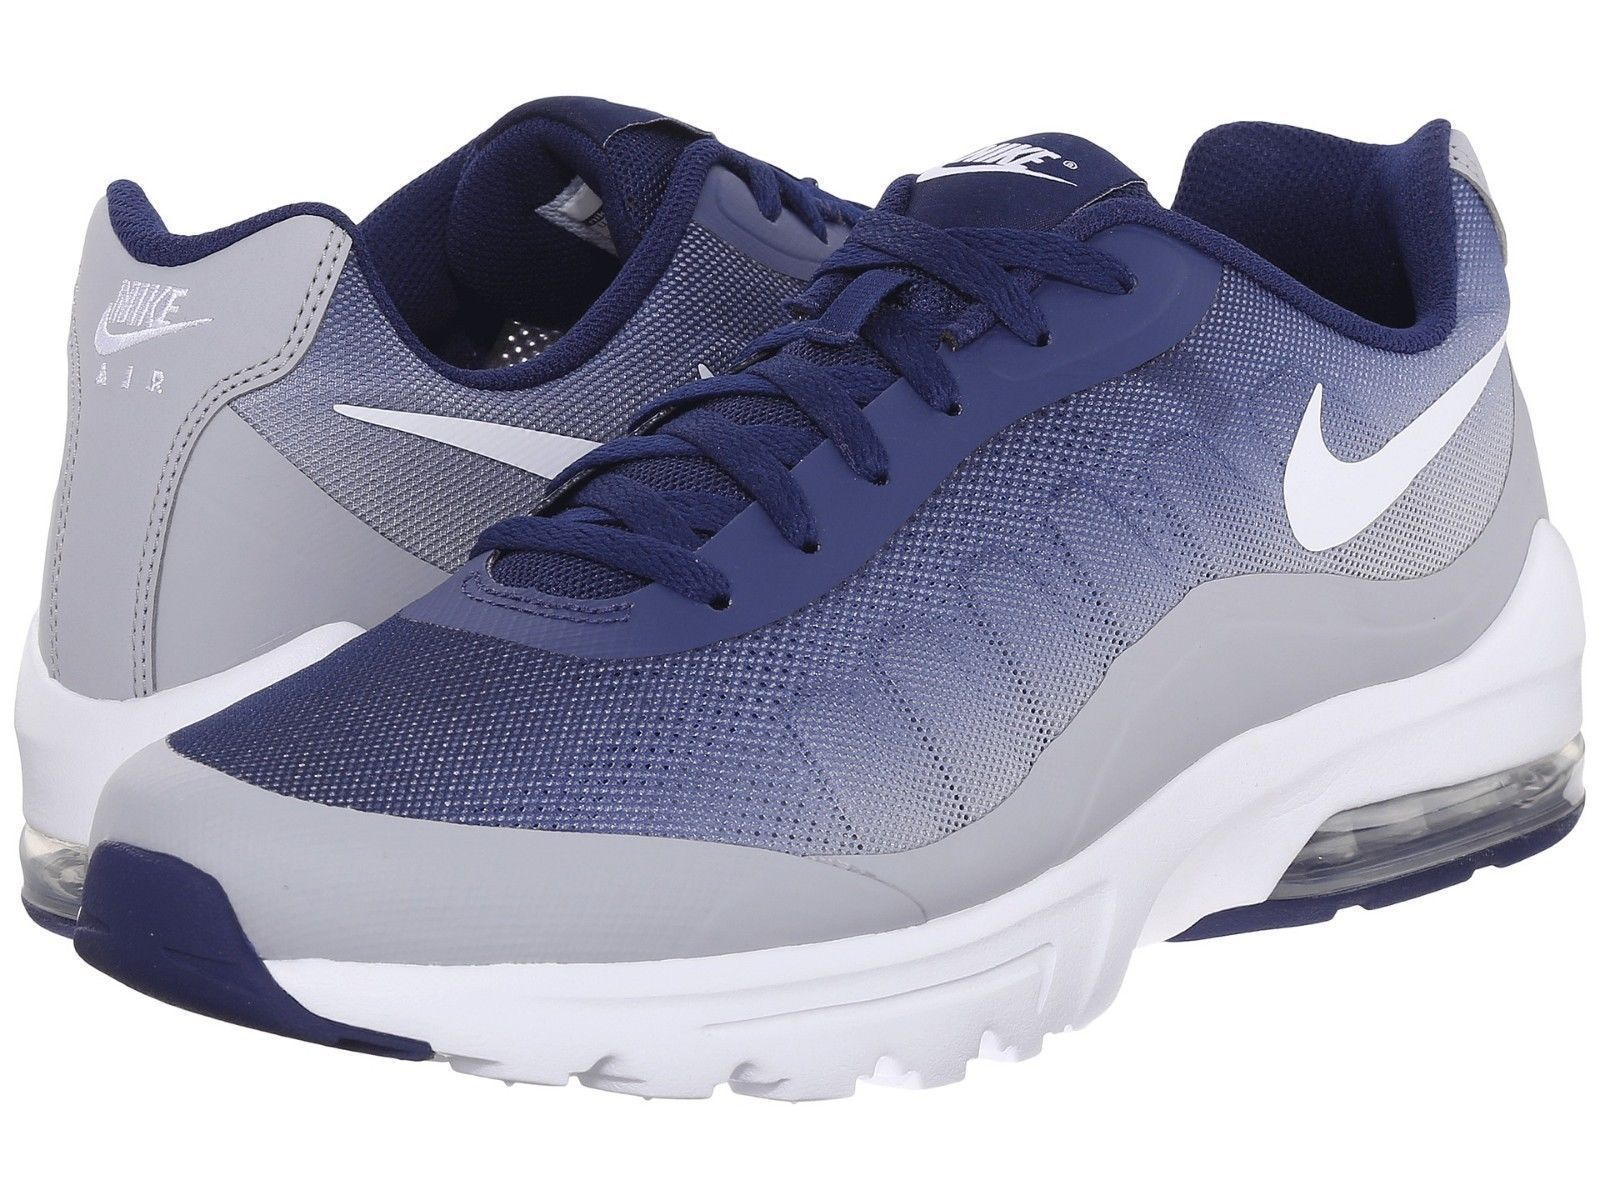 low cost 44025 31ebc NIKE AIR MAX INVIGOR PRINT NEW MEN S SIZE 12 BLUE GREY WHITE 749688 410